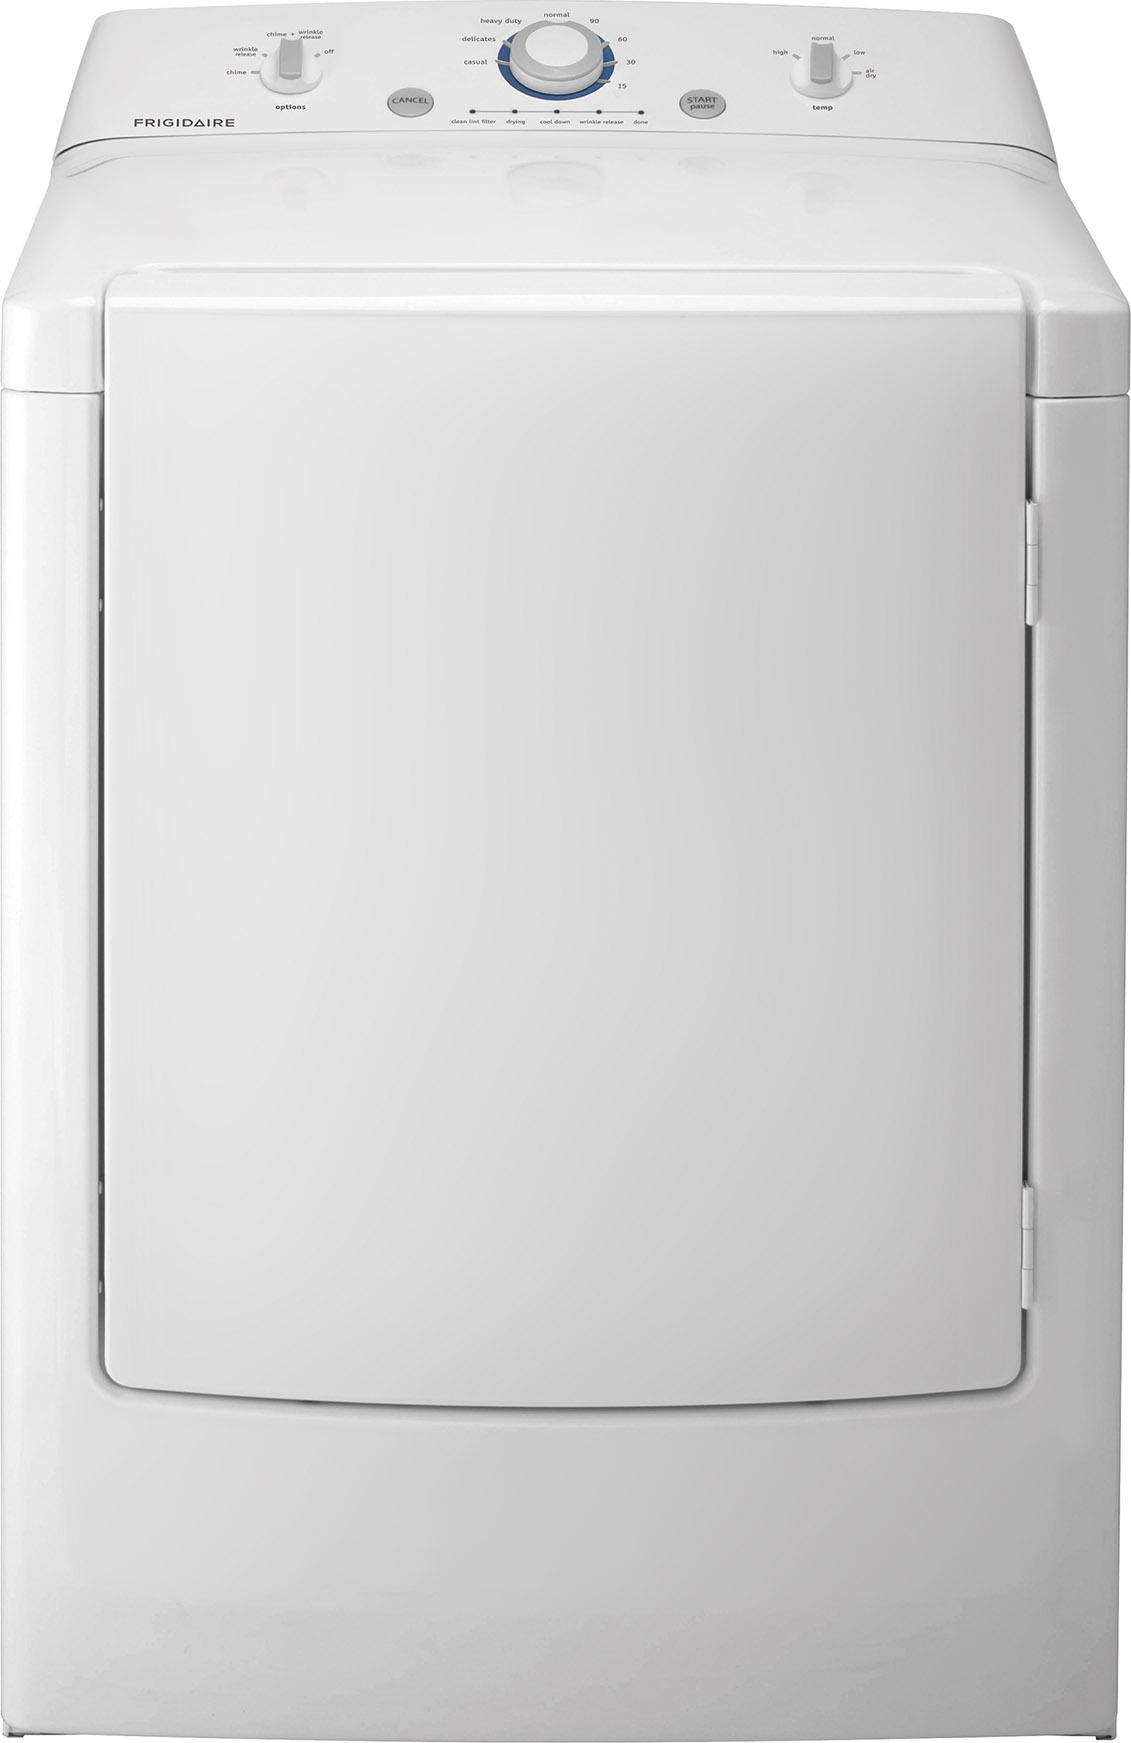 Frigidaire Electric Dryers Frigidaire 7.0 Cu. Ft. Electric Dryer - Item Number: FFRE1001PW